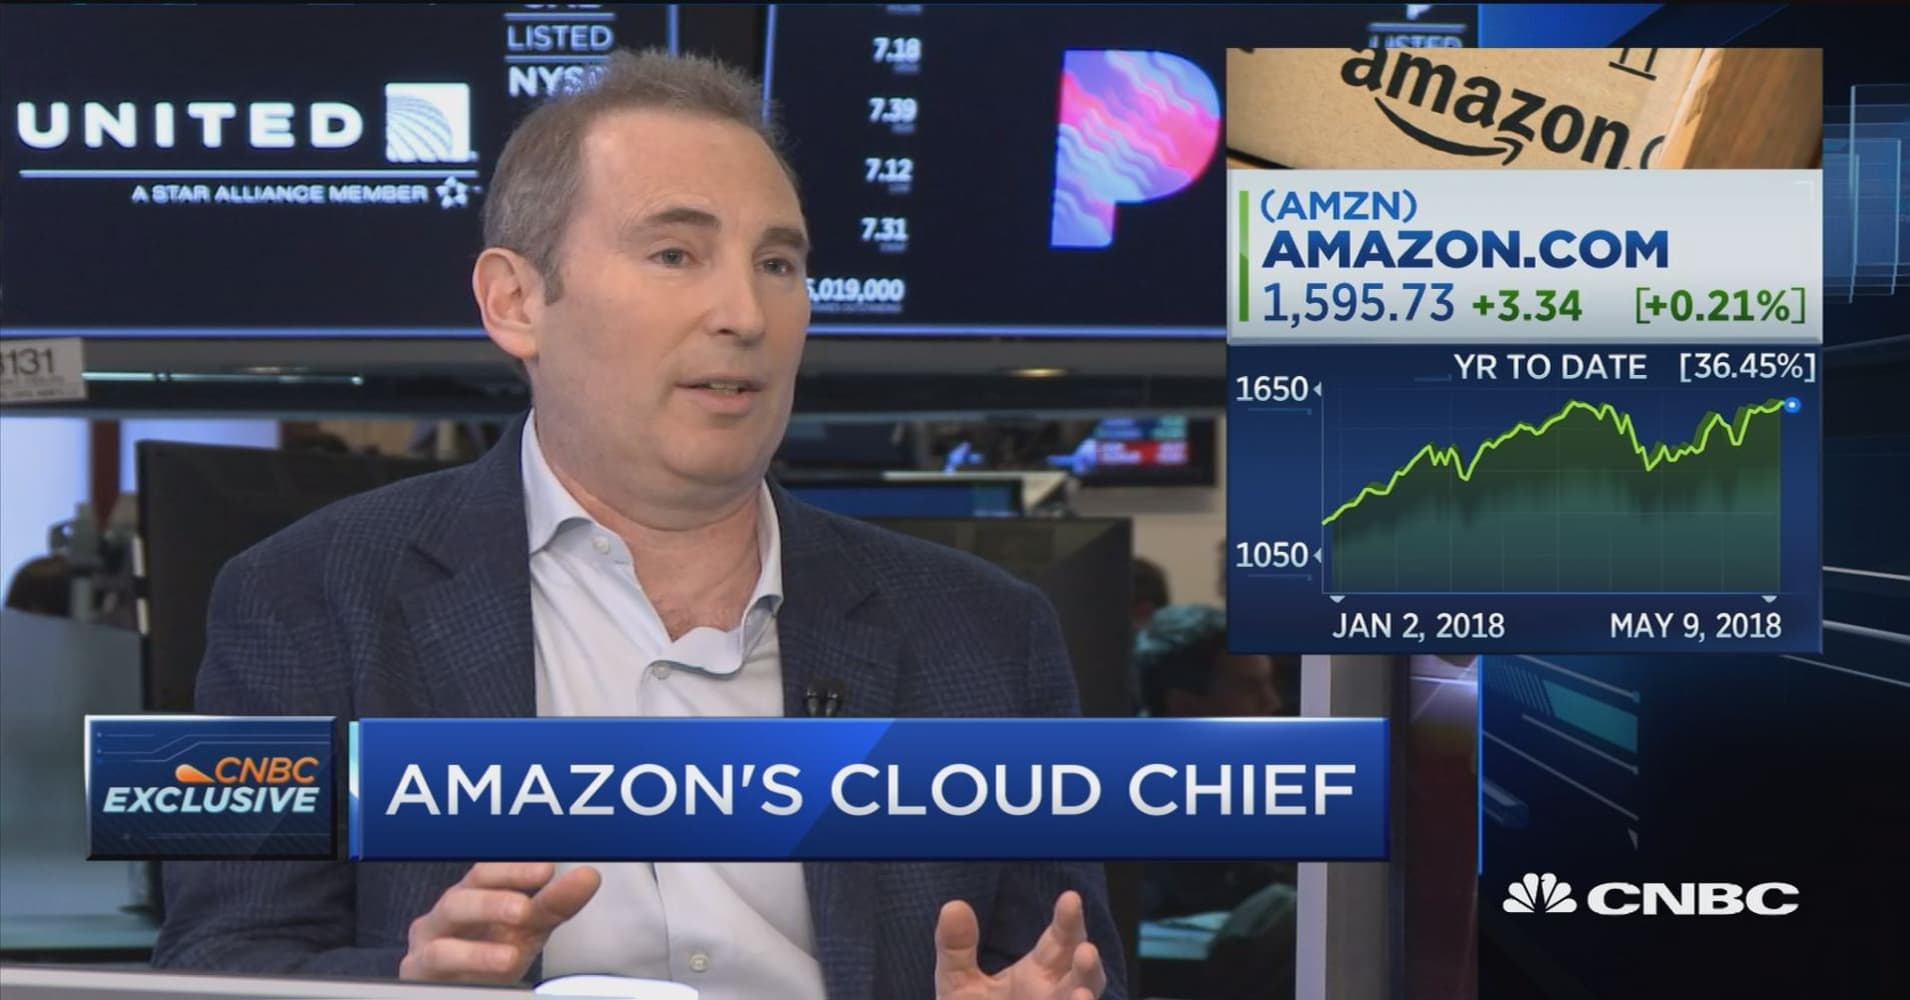 AWS CEO: We're customer-focused, not competitor-focused